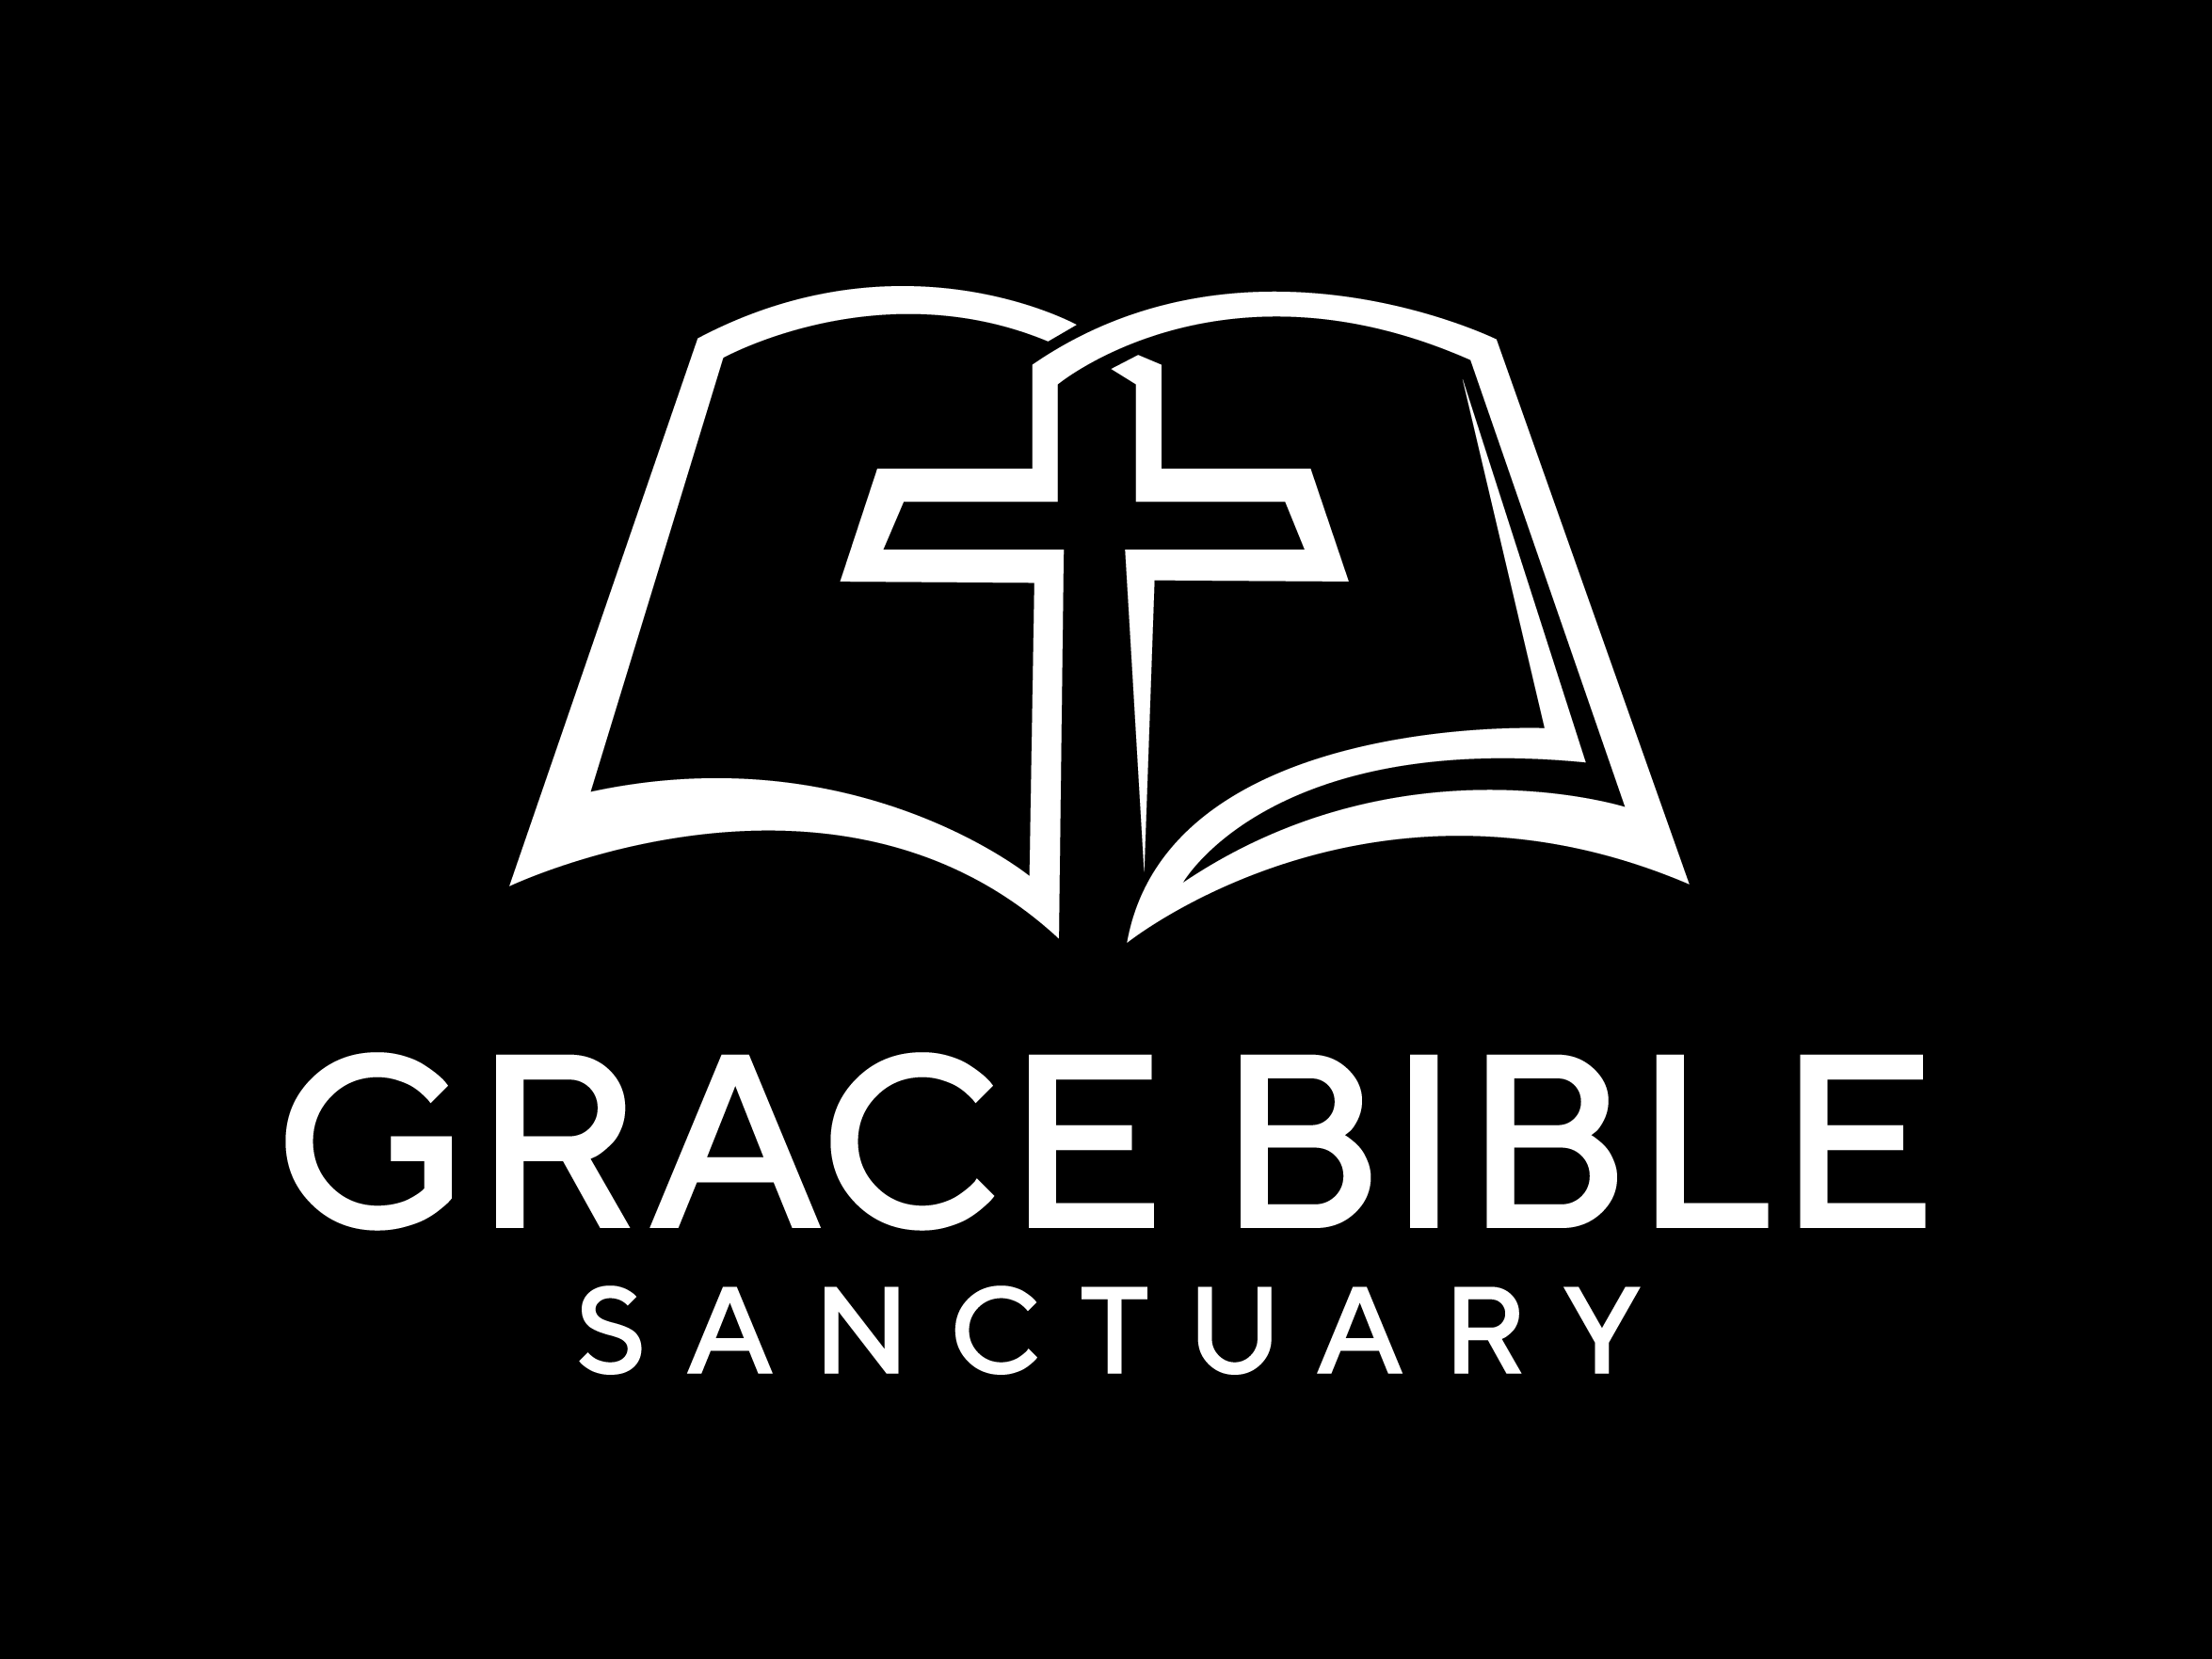 Grace Bible Sanctuary